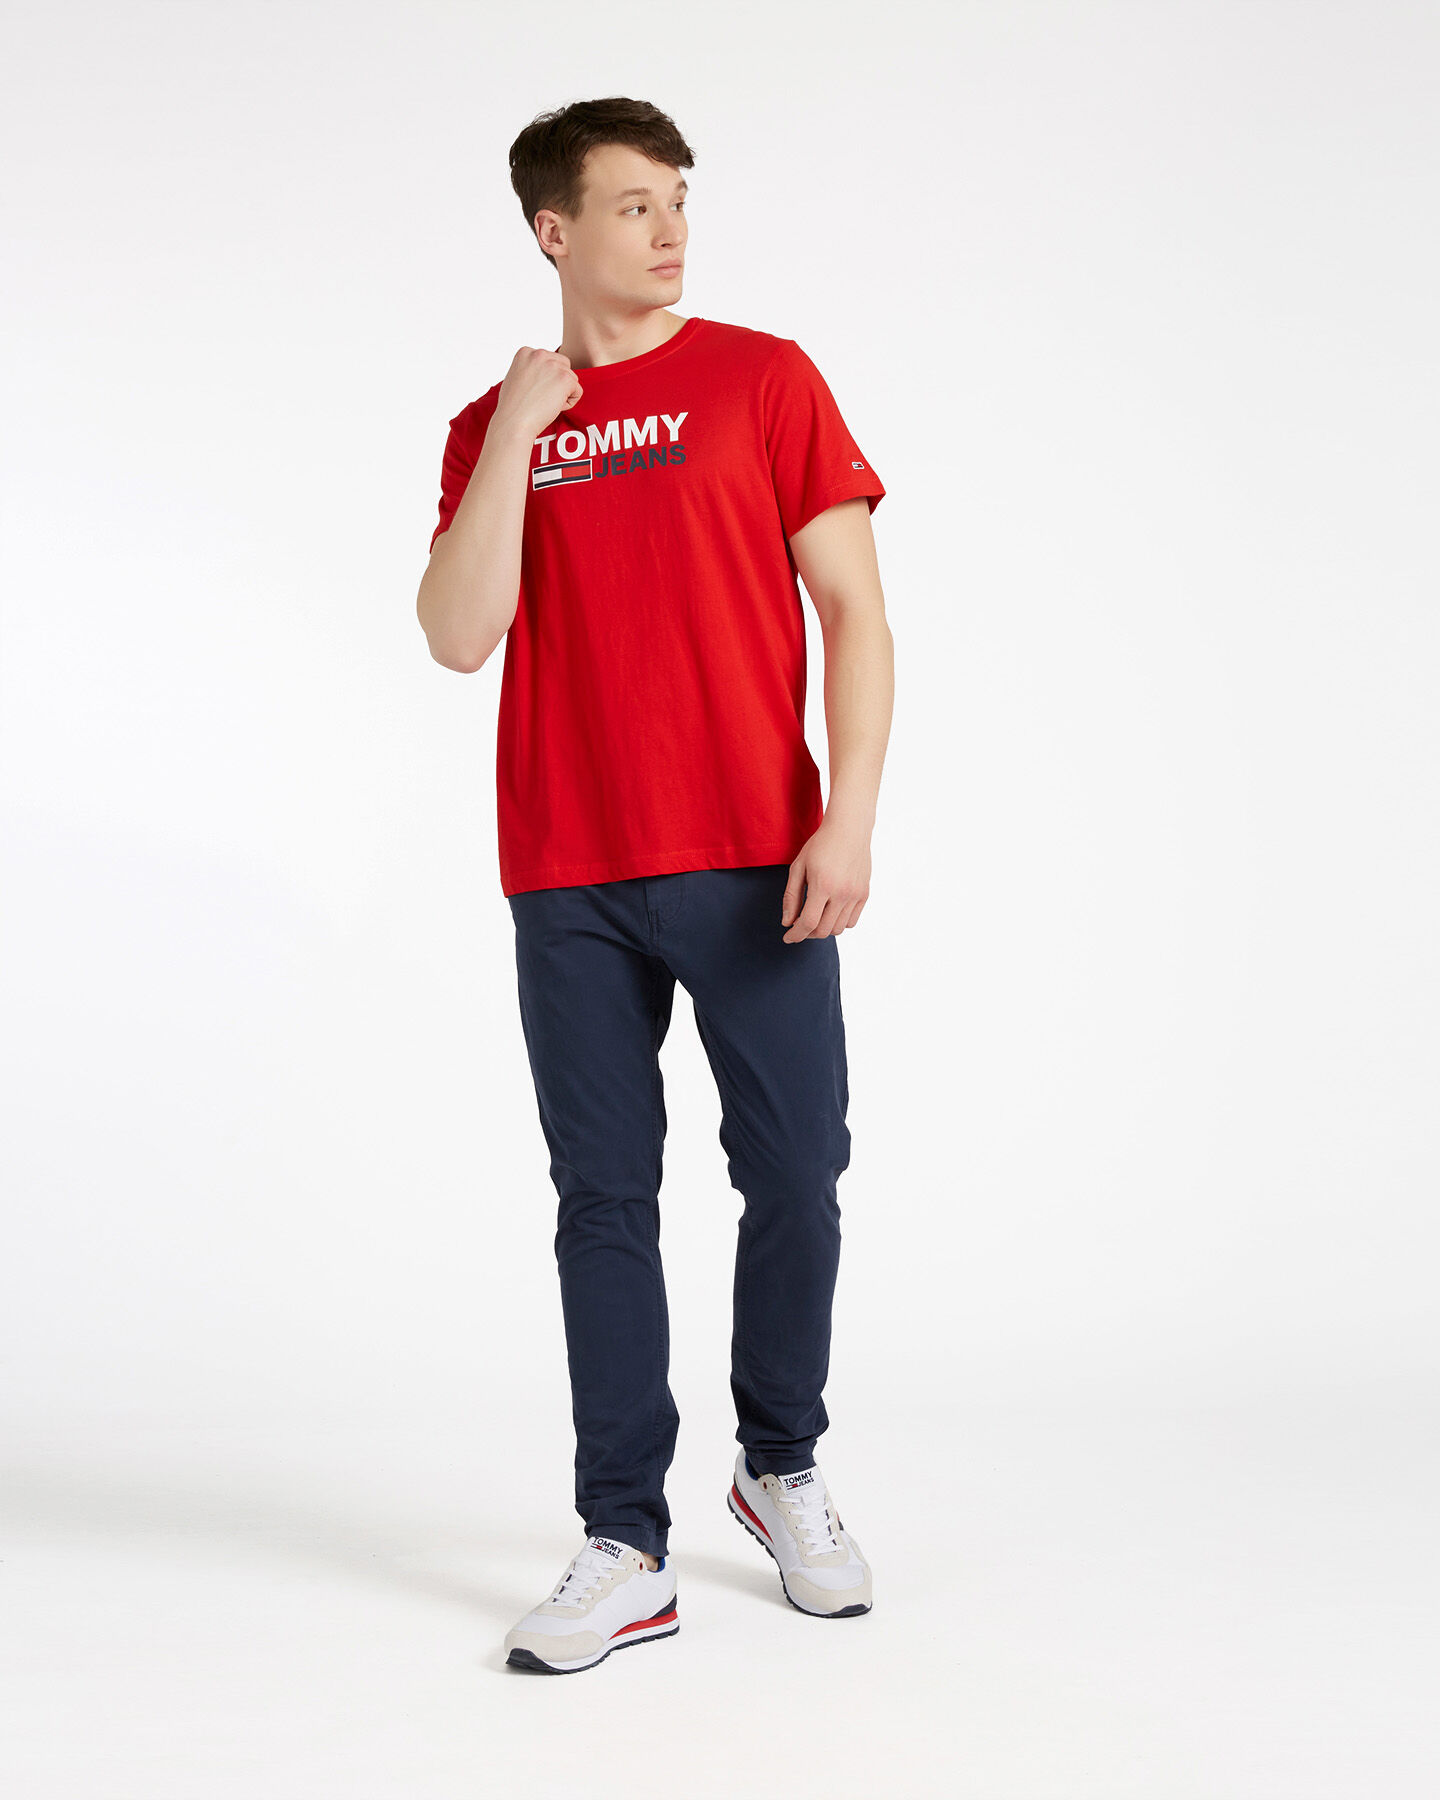 T-Shirt TOMMY HILFIGER CORP LOGO M S4088732 scatto 1